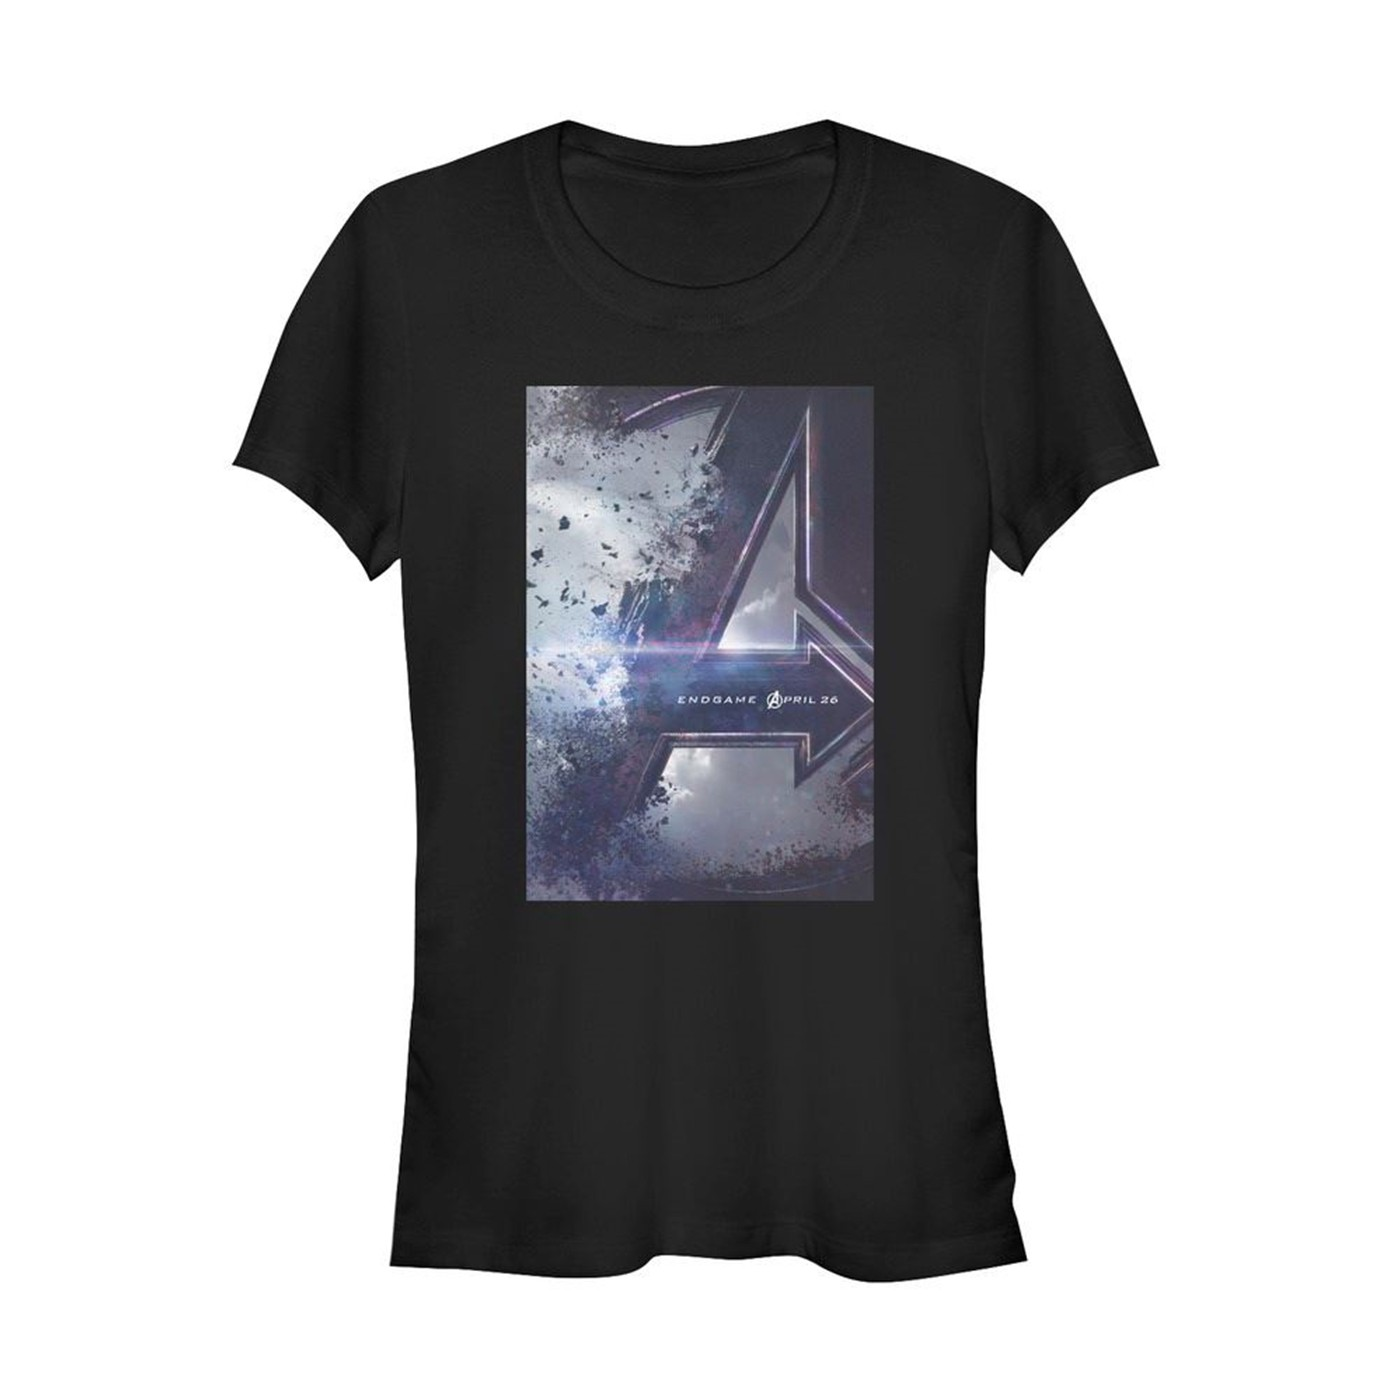 Avengers: Endgame Movie Poster Women's T-Shirt